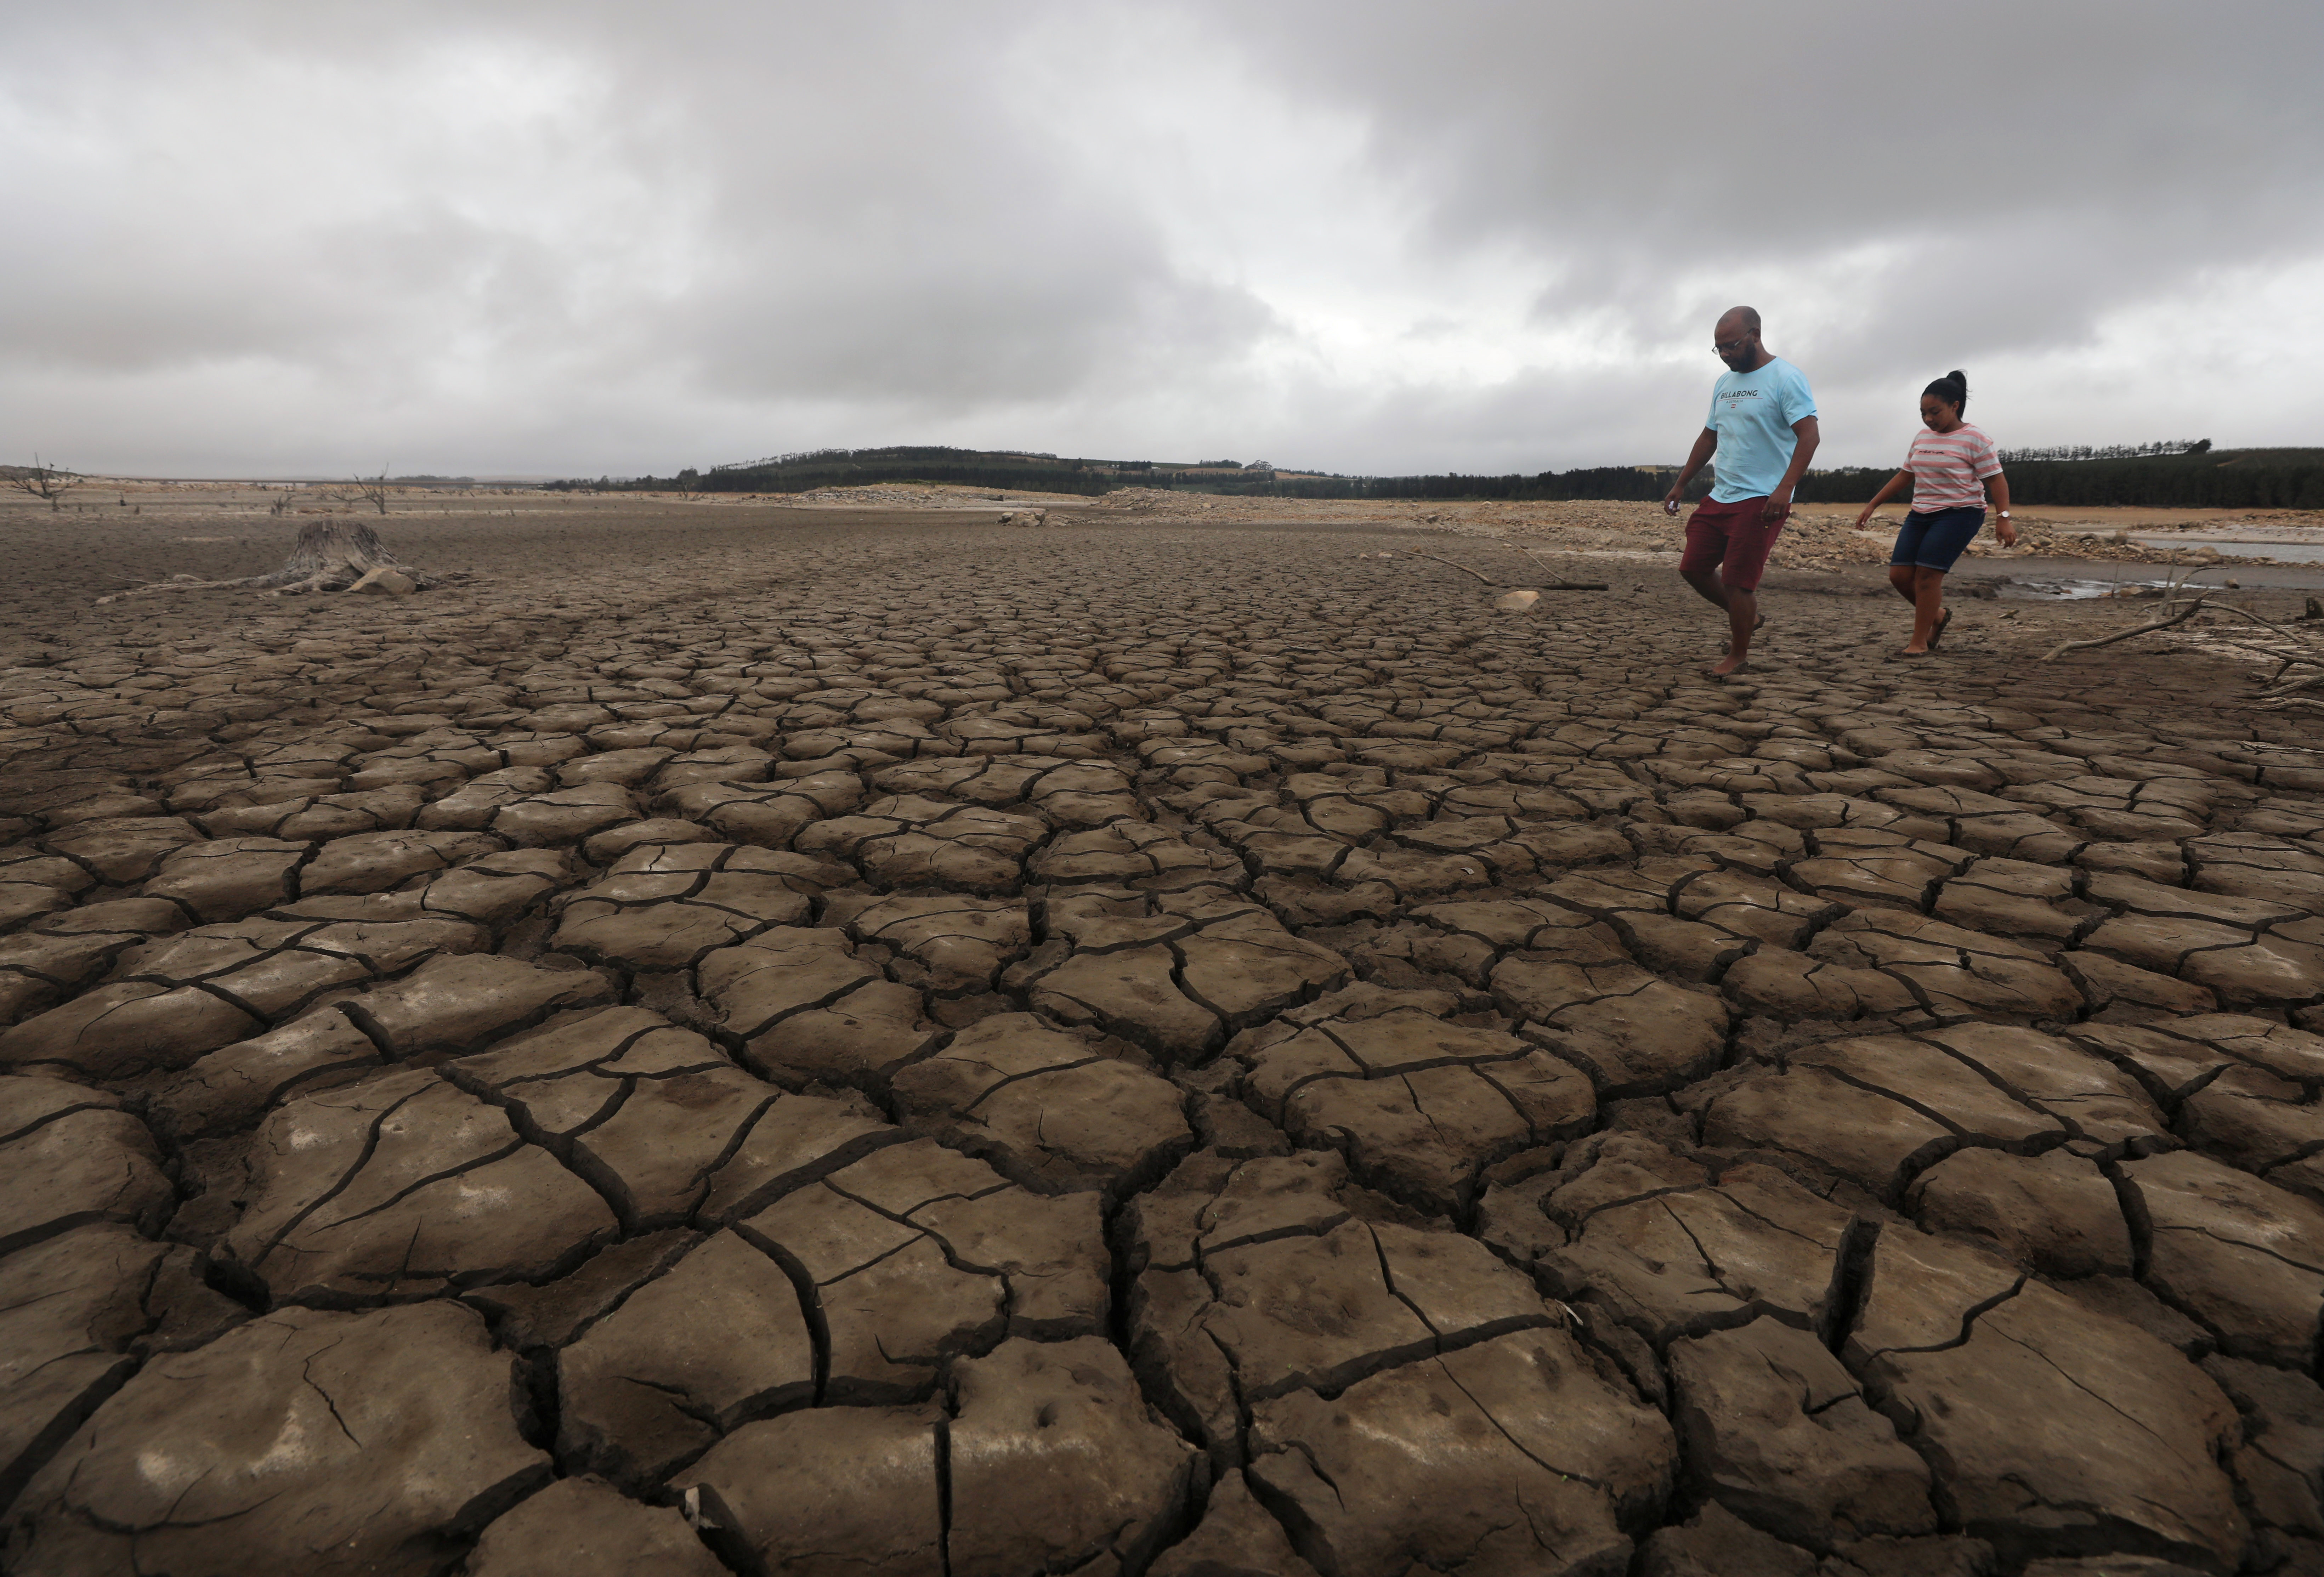 A family negotiates their way through caked mud around a dried up section of the Theewaterskloof dam near Cape Town, South Africa, Jan. 20, 2018.